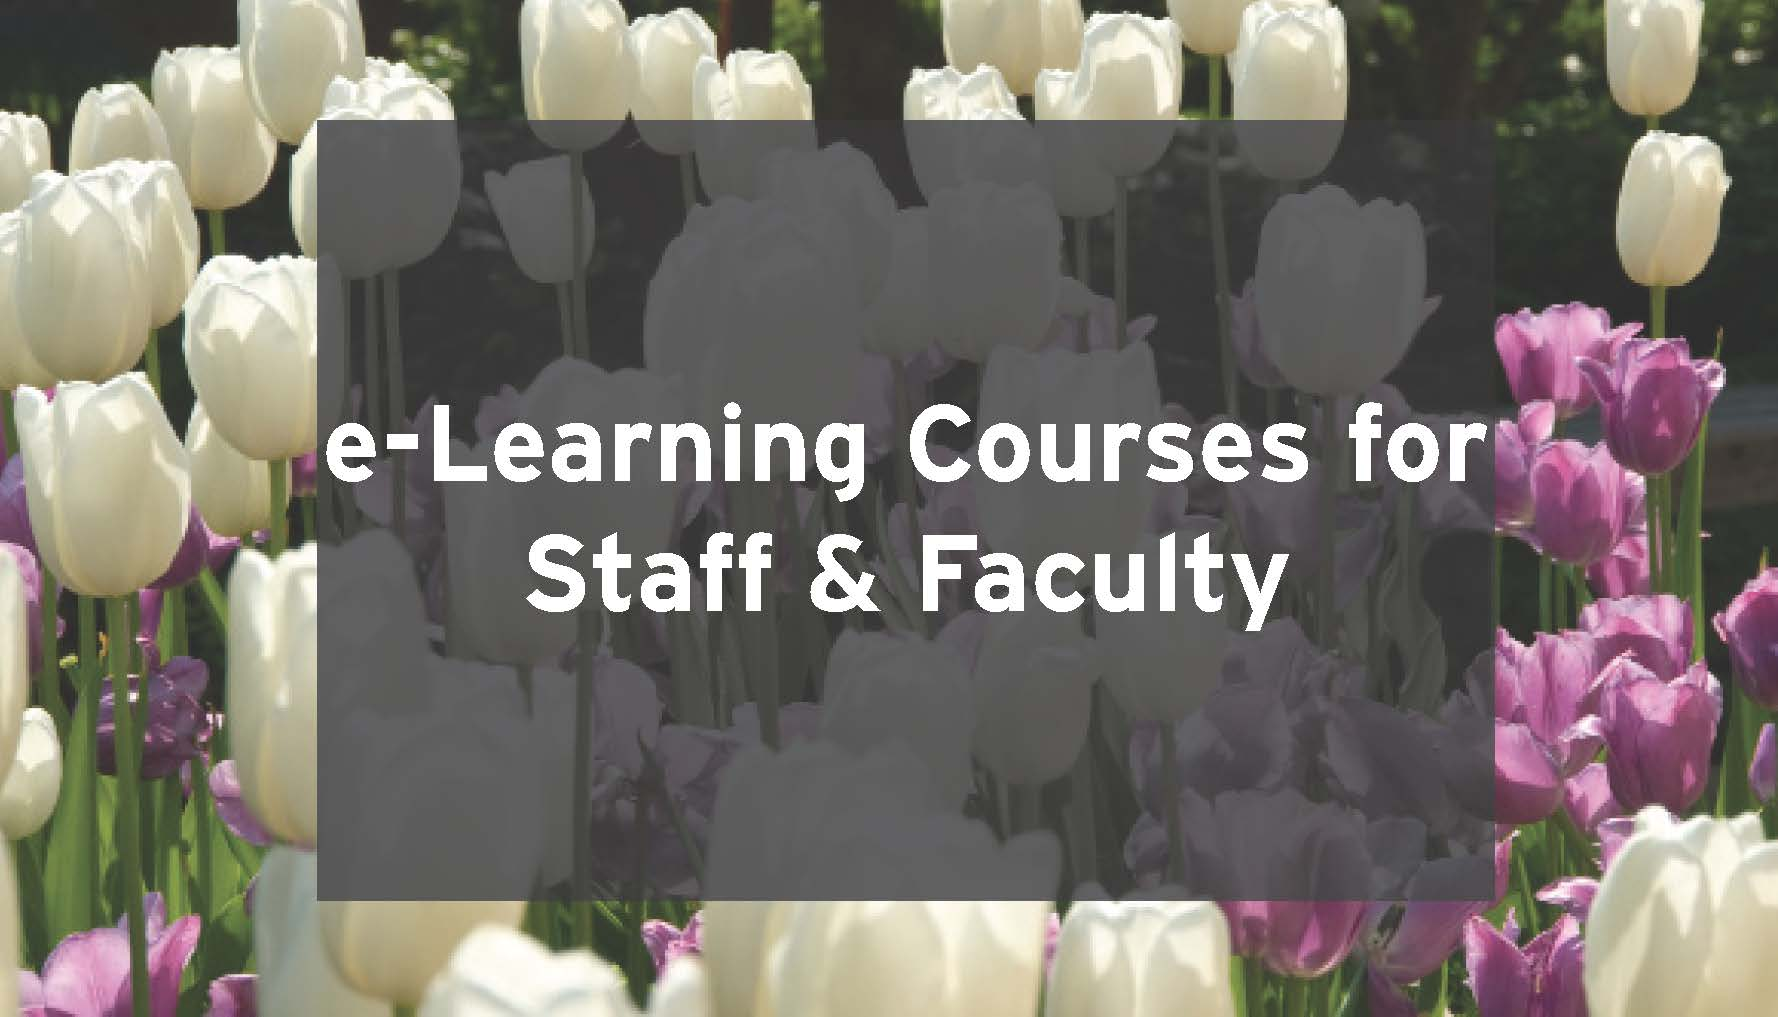 e-Learning Courses for Staff and Faculty